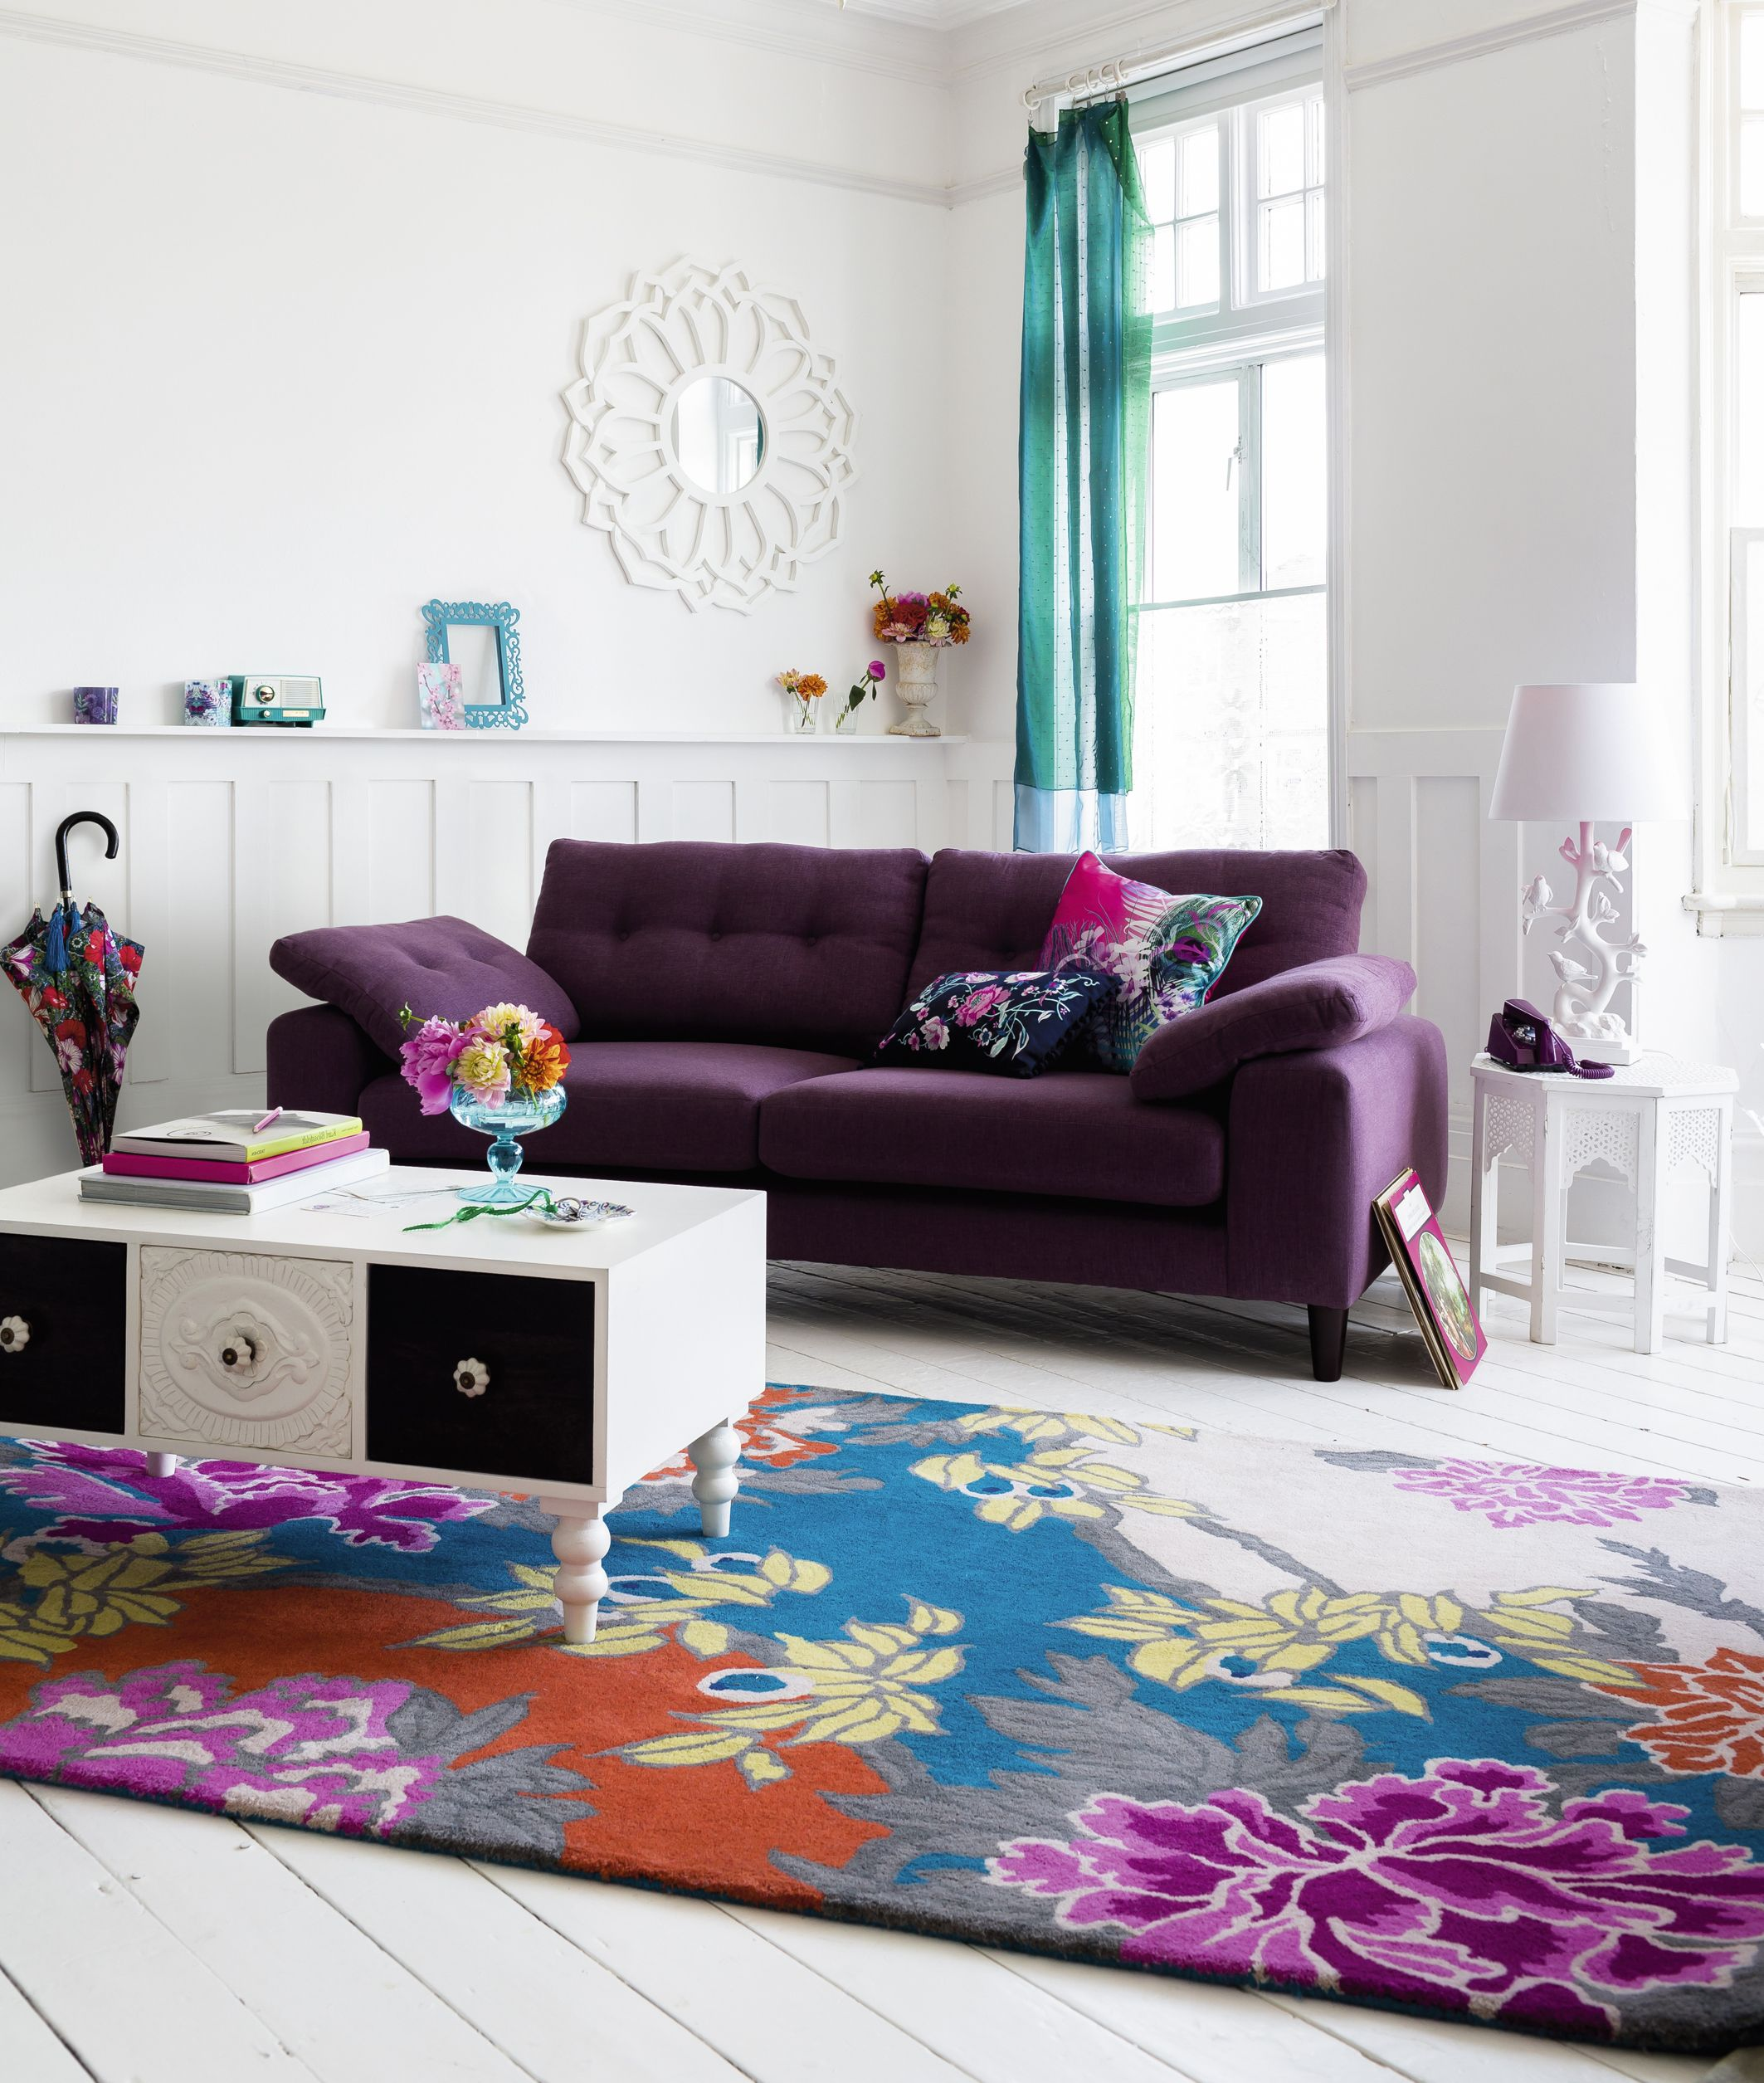 A Bright Patterned Room Full Of Colour And Florals Home Floral